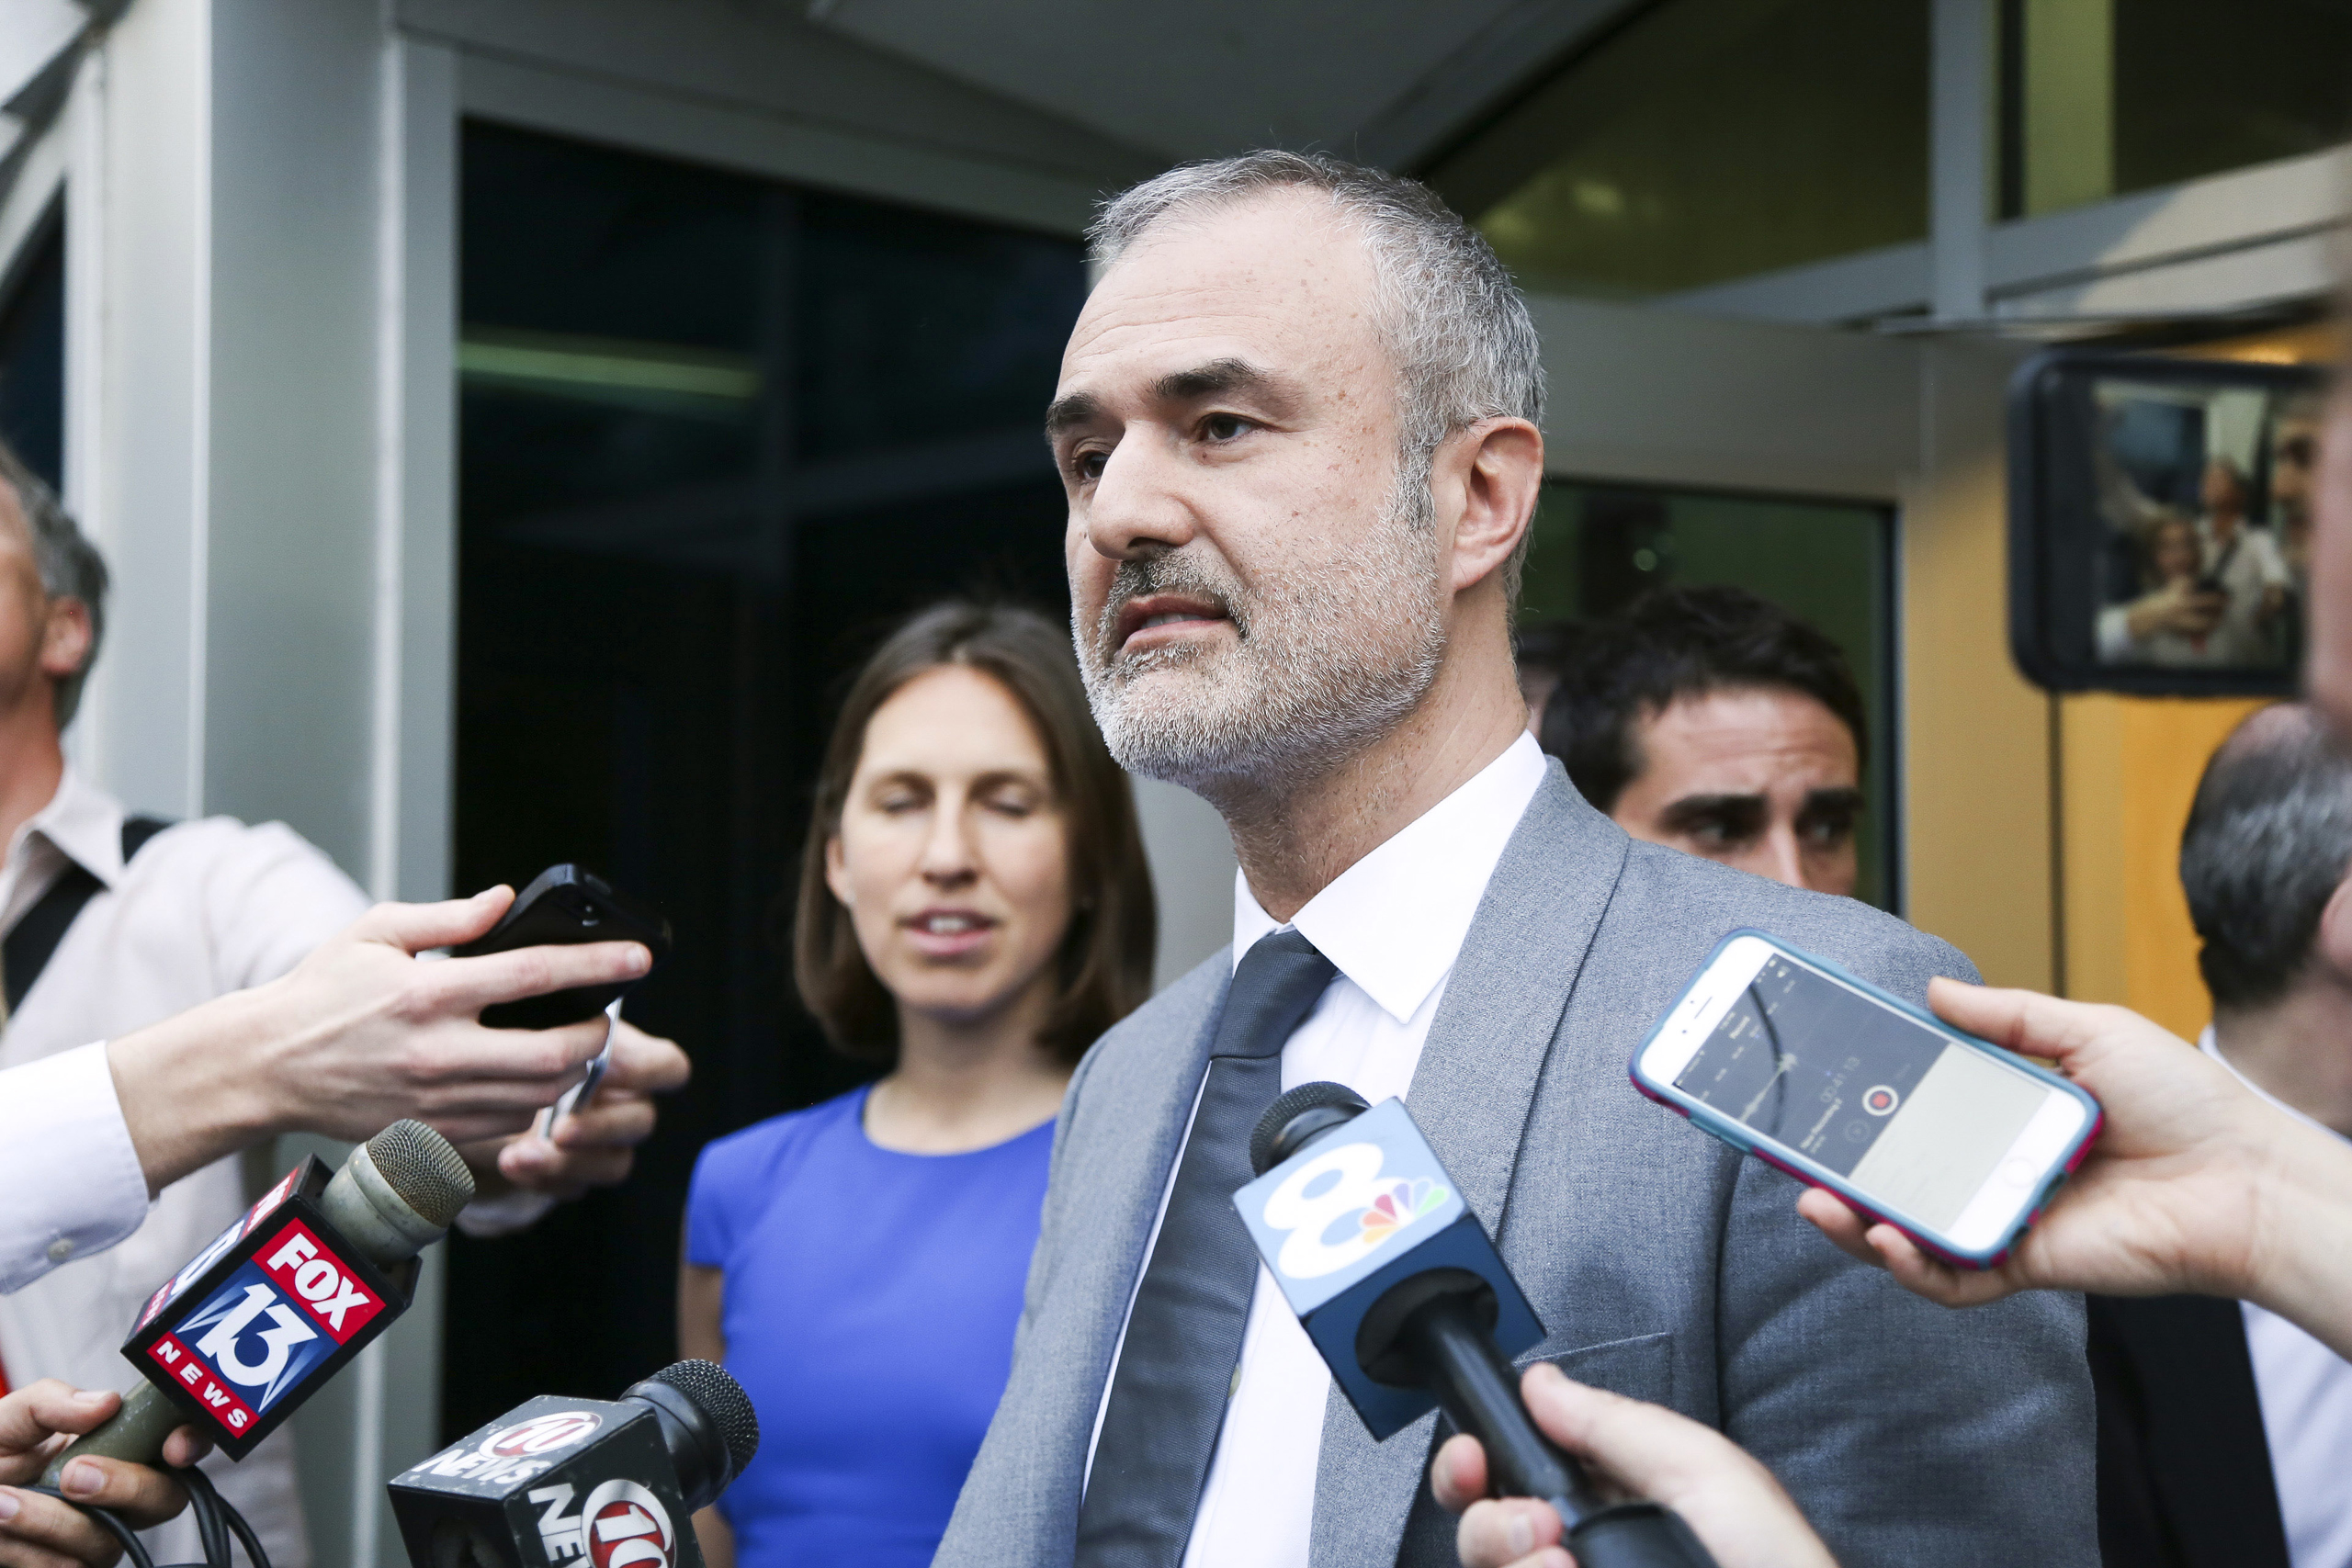 Gawker founder Nick Denton speaks to the media, in St. Petersburg, Fla. on March 18, 2016.